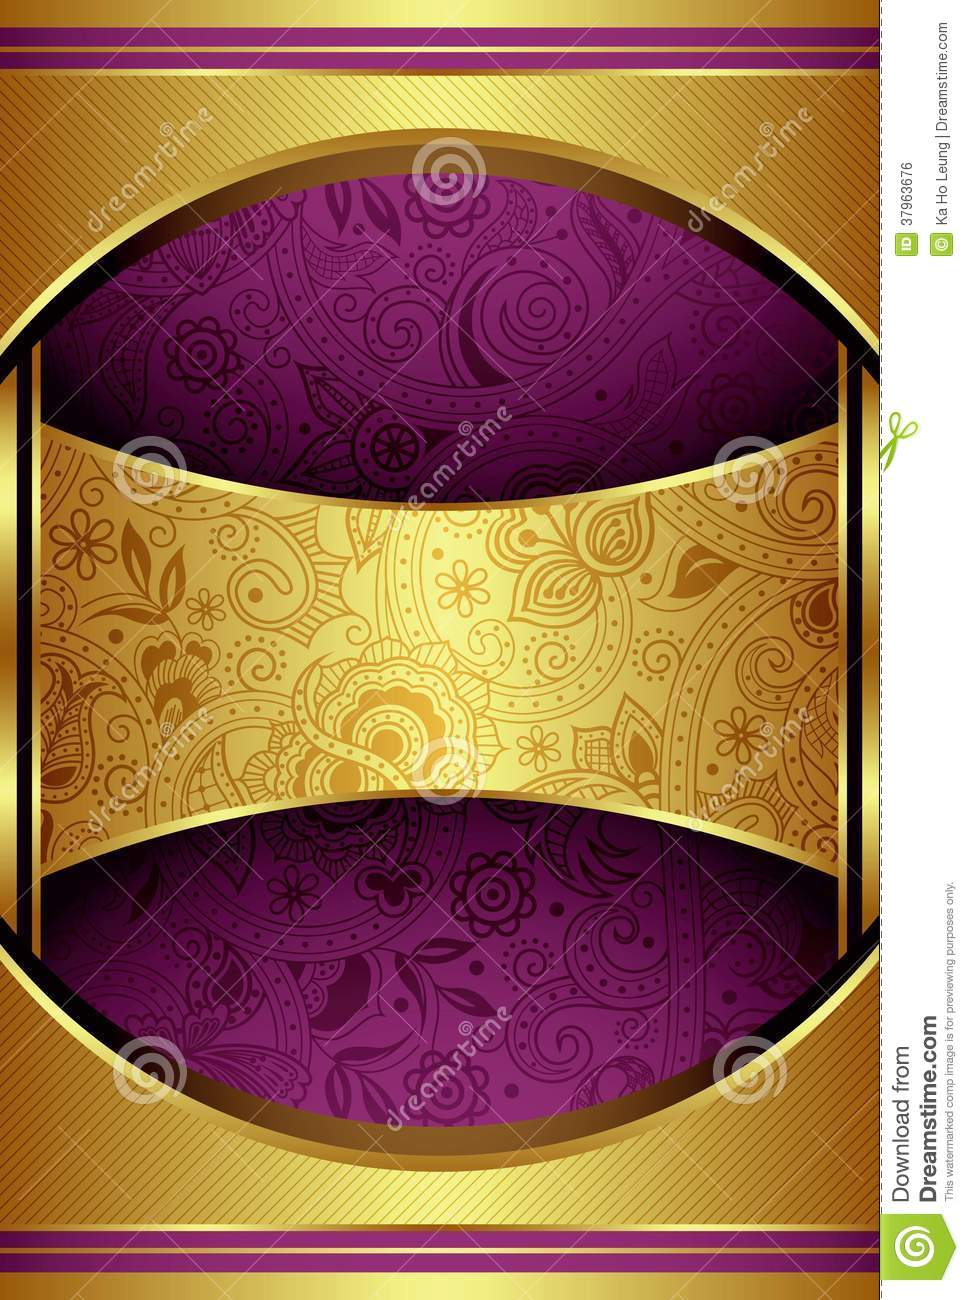 Abstract Gold And Purple Background Royalty Free Stock ...